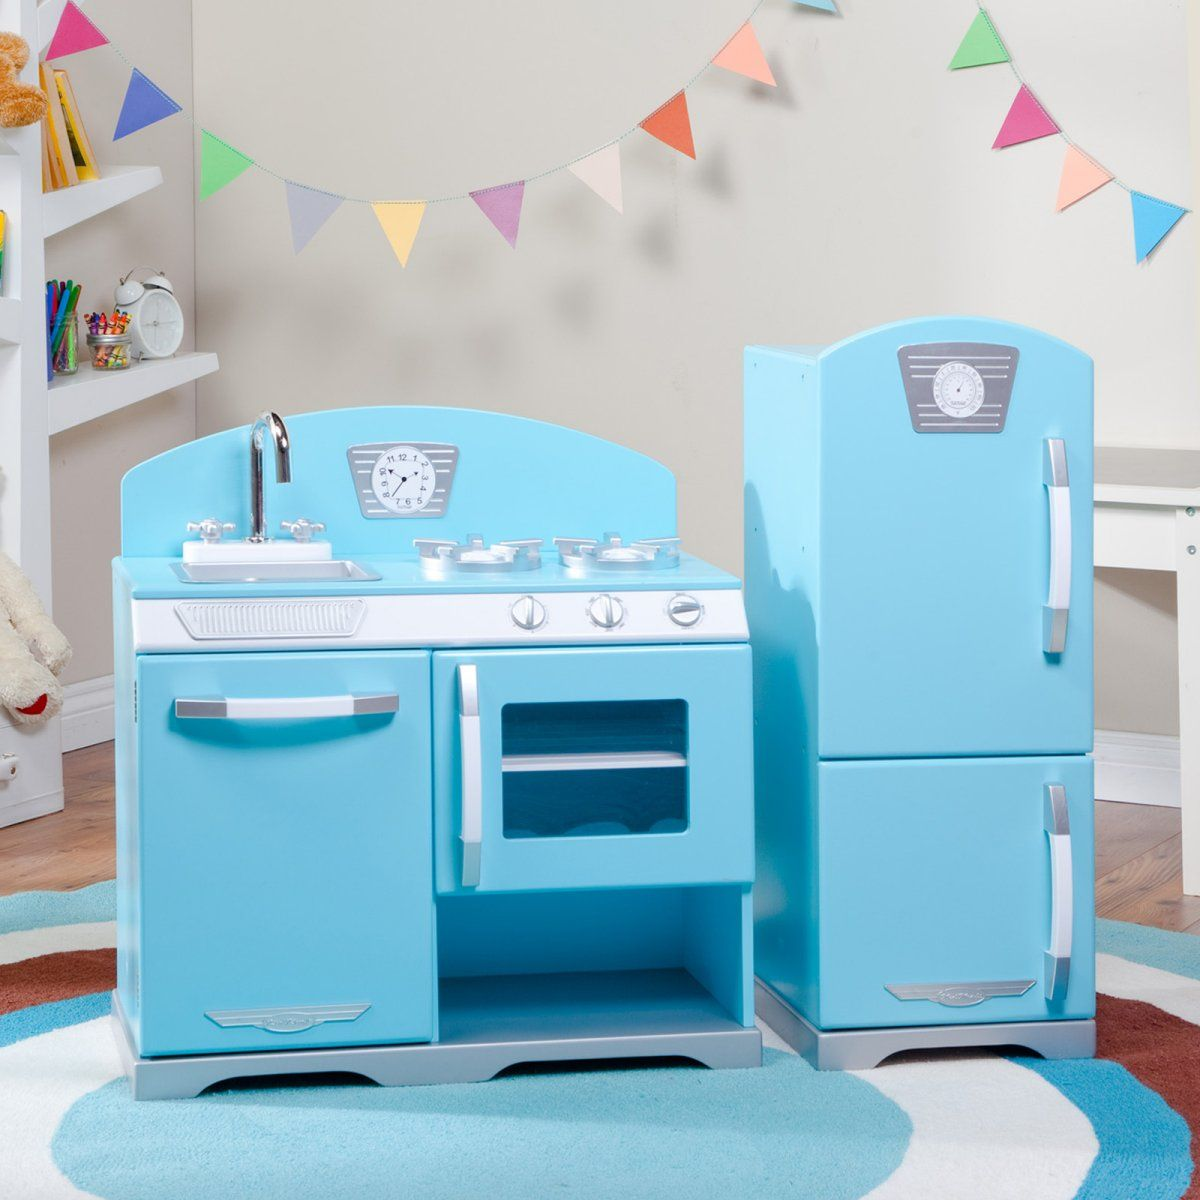 Kidkraft Retro Kitchen kidkraft 2 piece blue retro play kitchen | kids kitchen